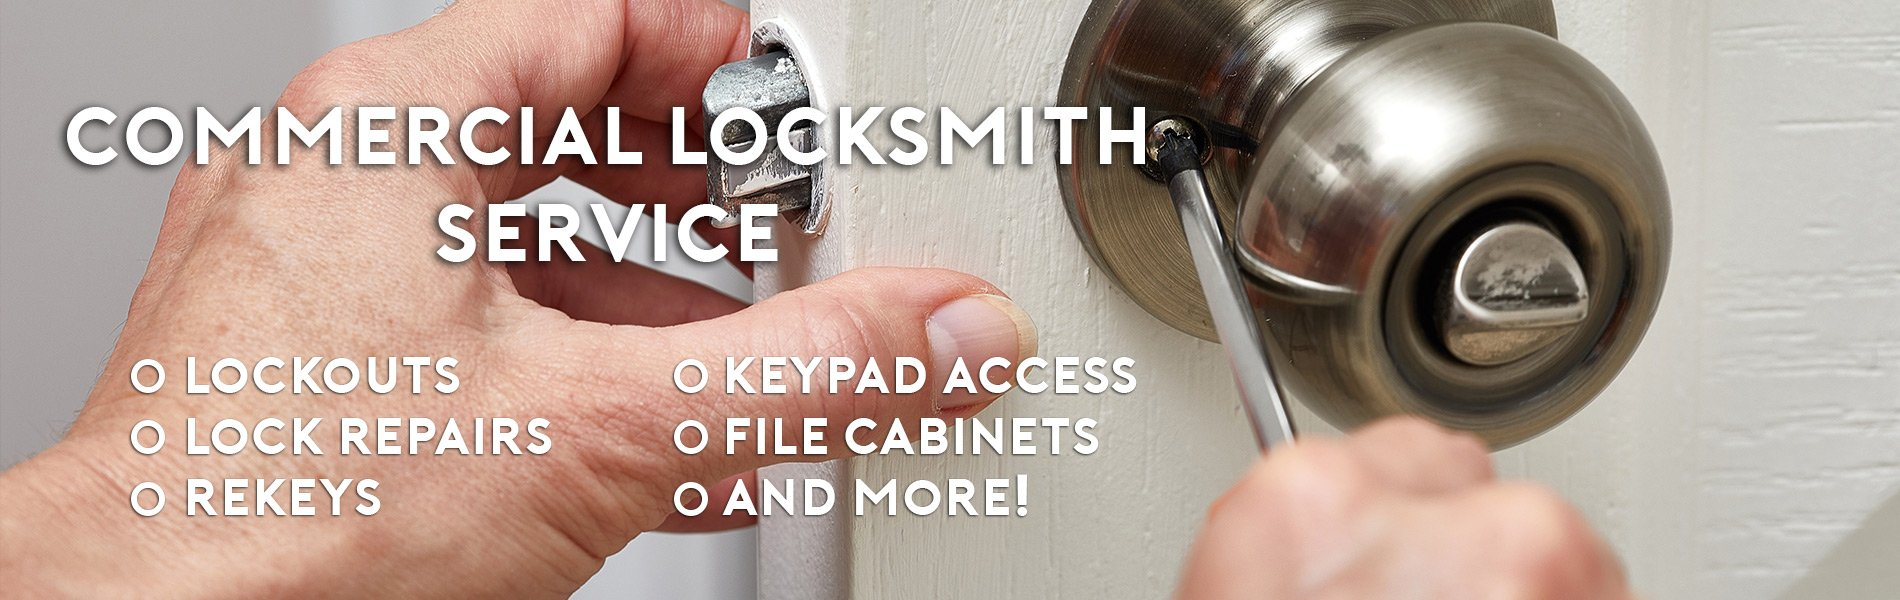 City Locksmith Shop Scotch Plains, NJ 908-287-5093